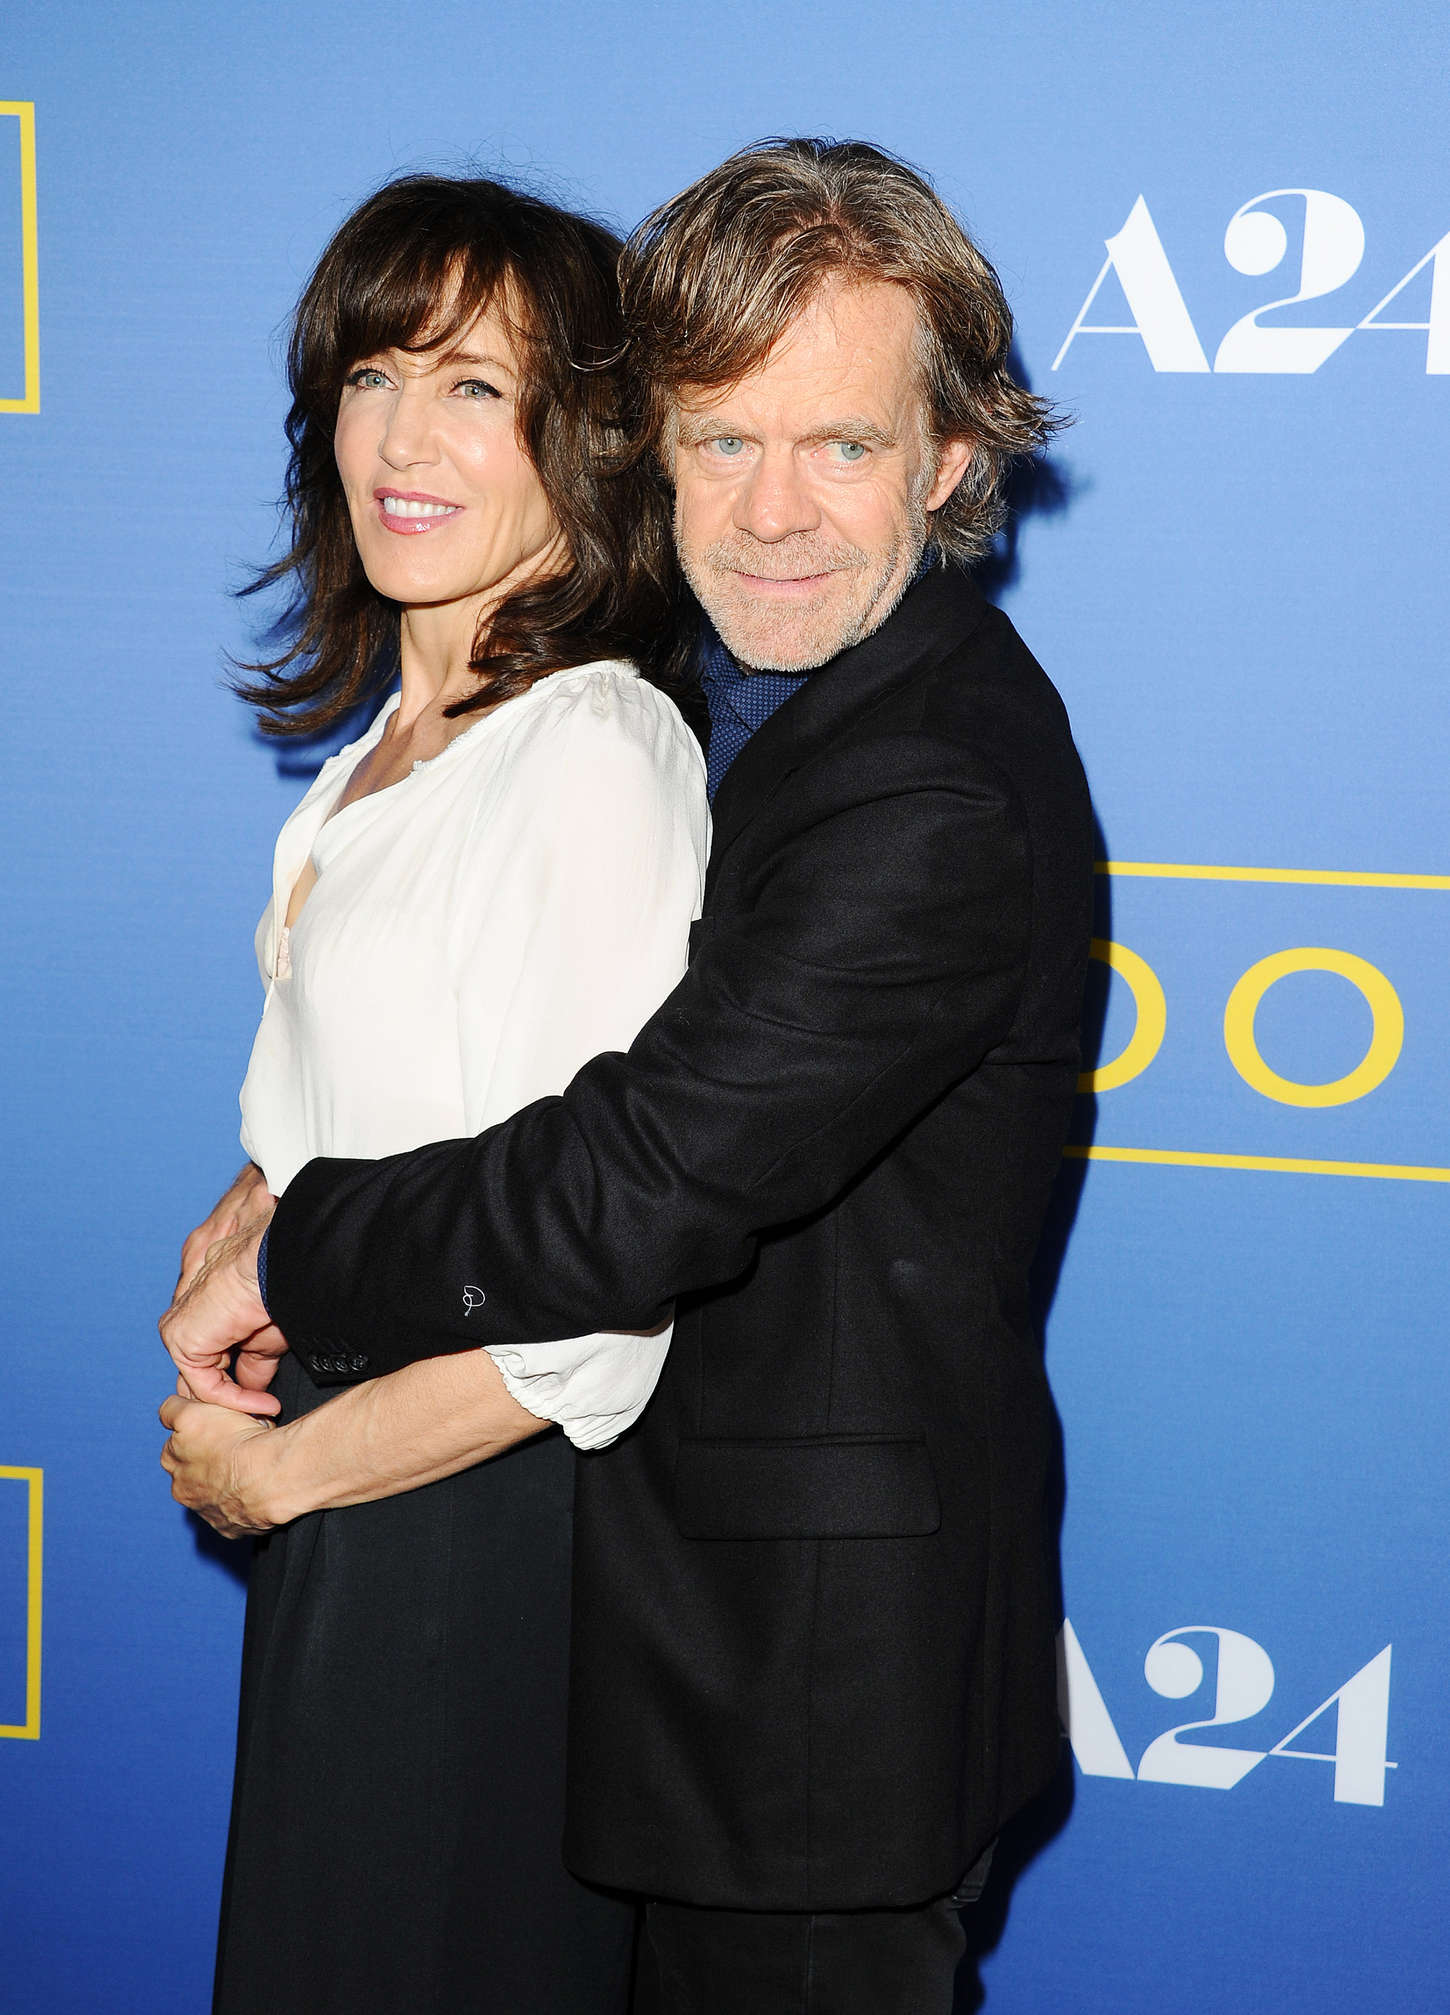 Felicity Huffman Room Premiere in West Hollywood